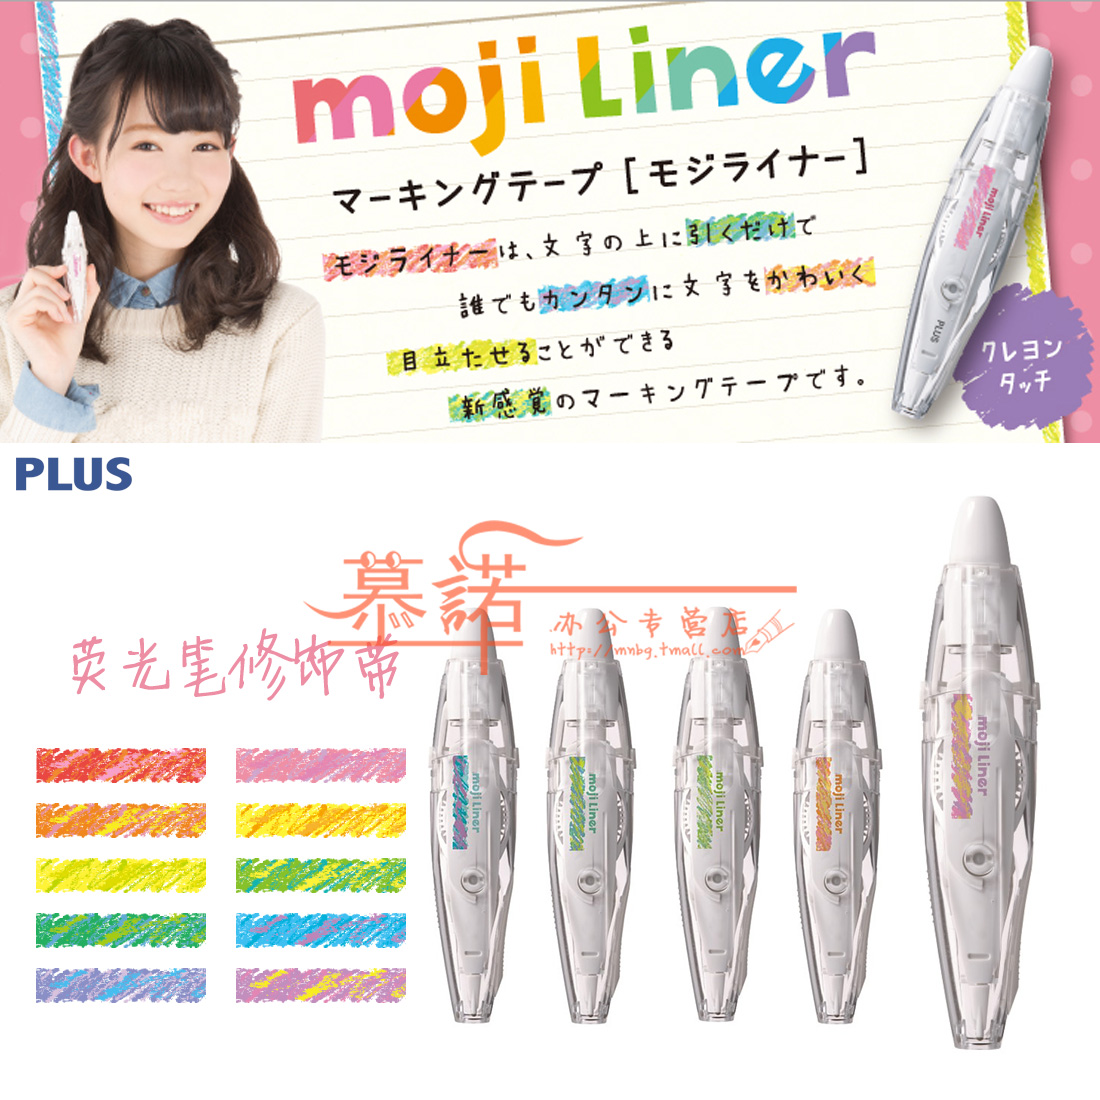 Japan plus plus moji liner word fluorescent lace modified with m long decorated with creative diy